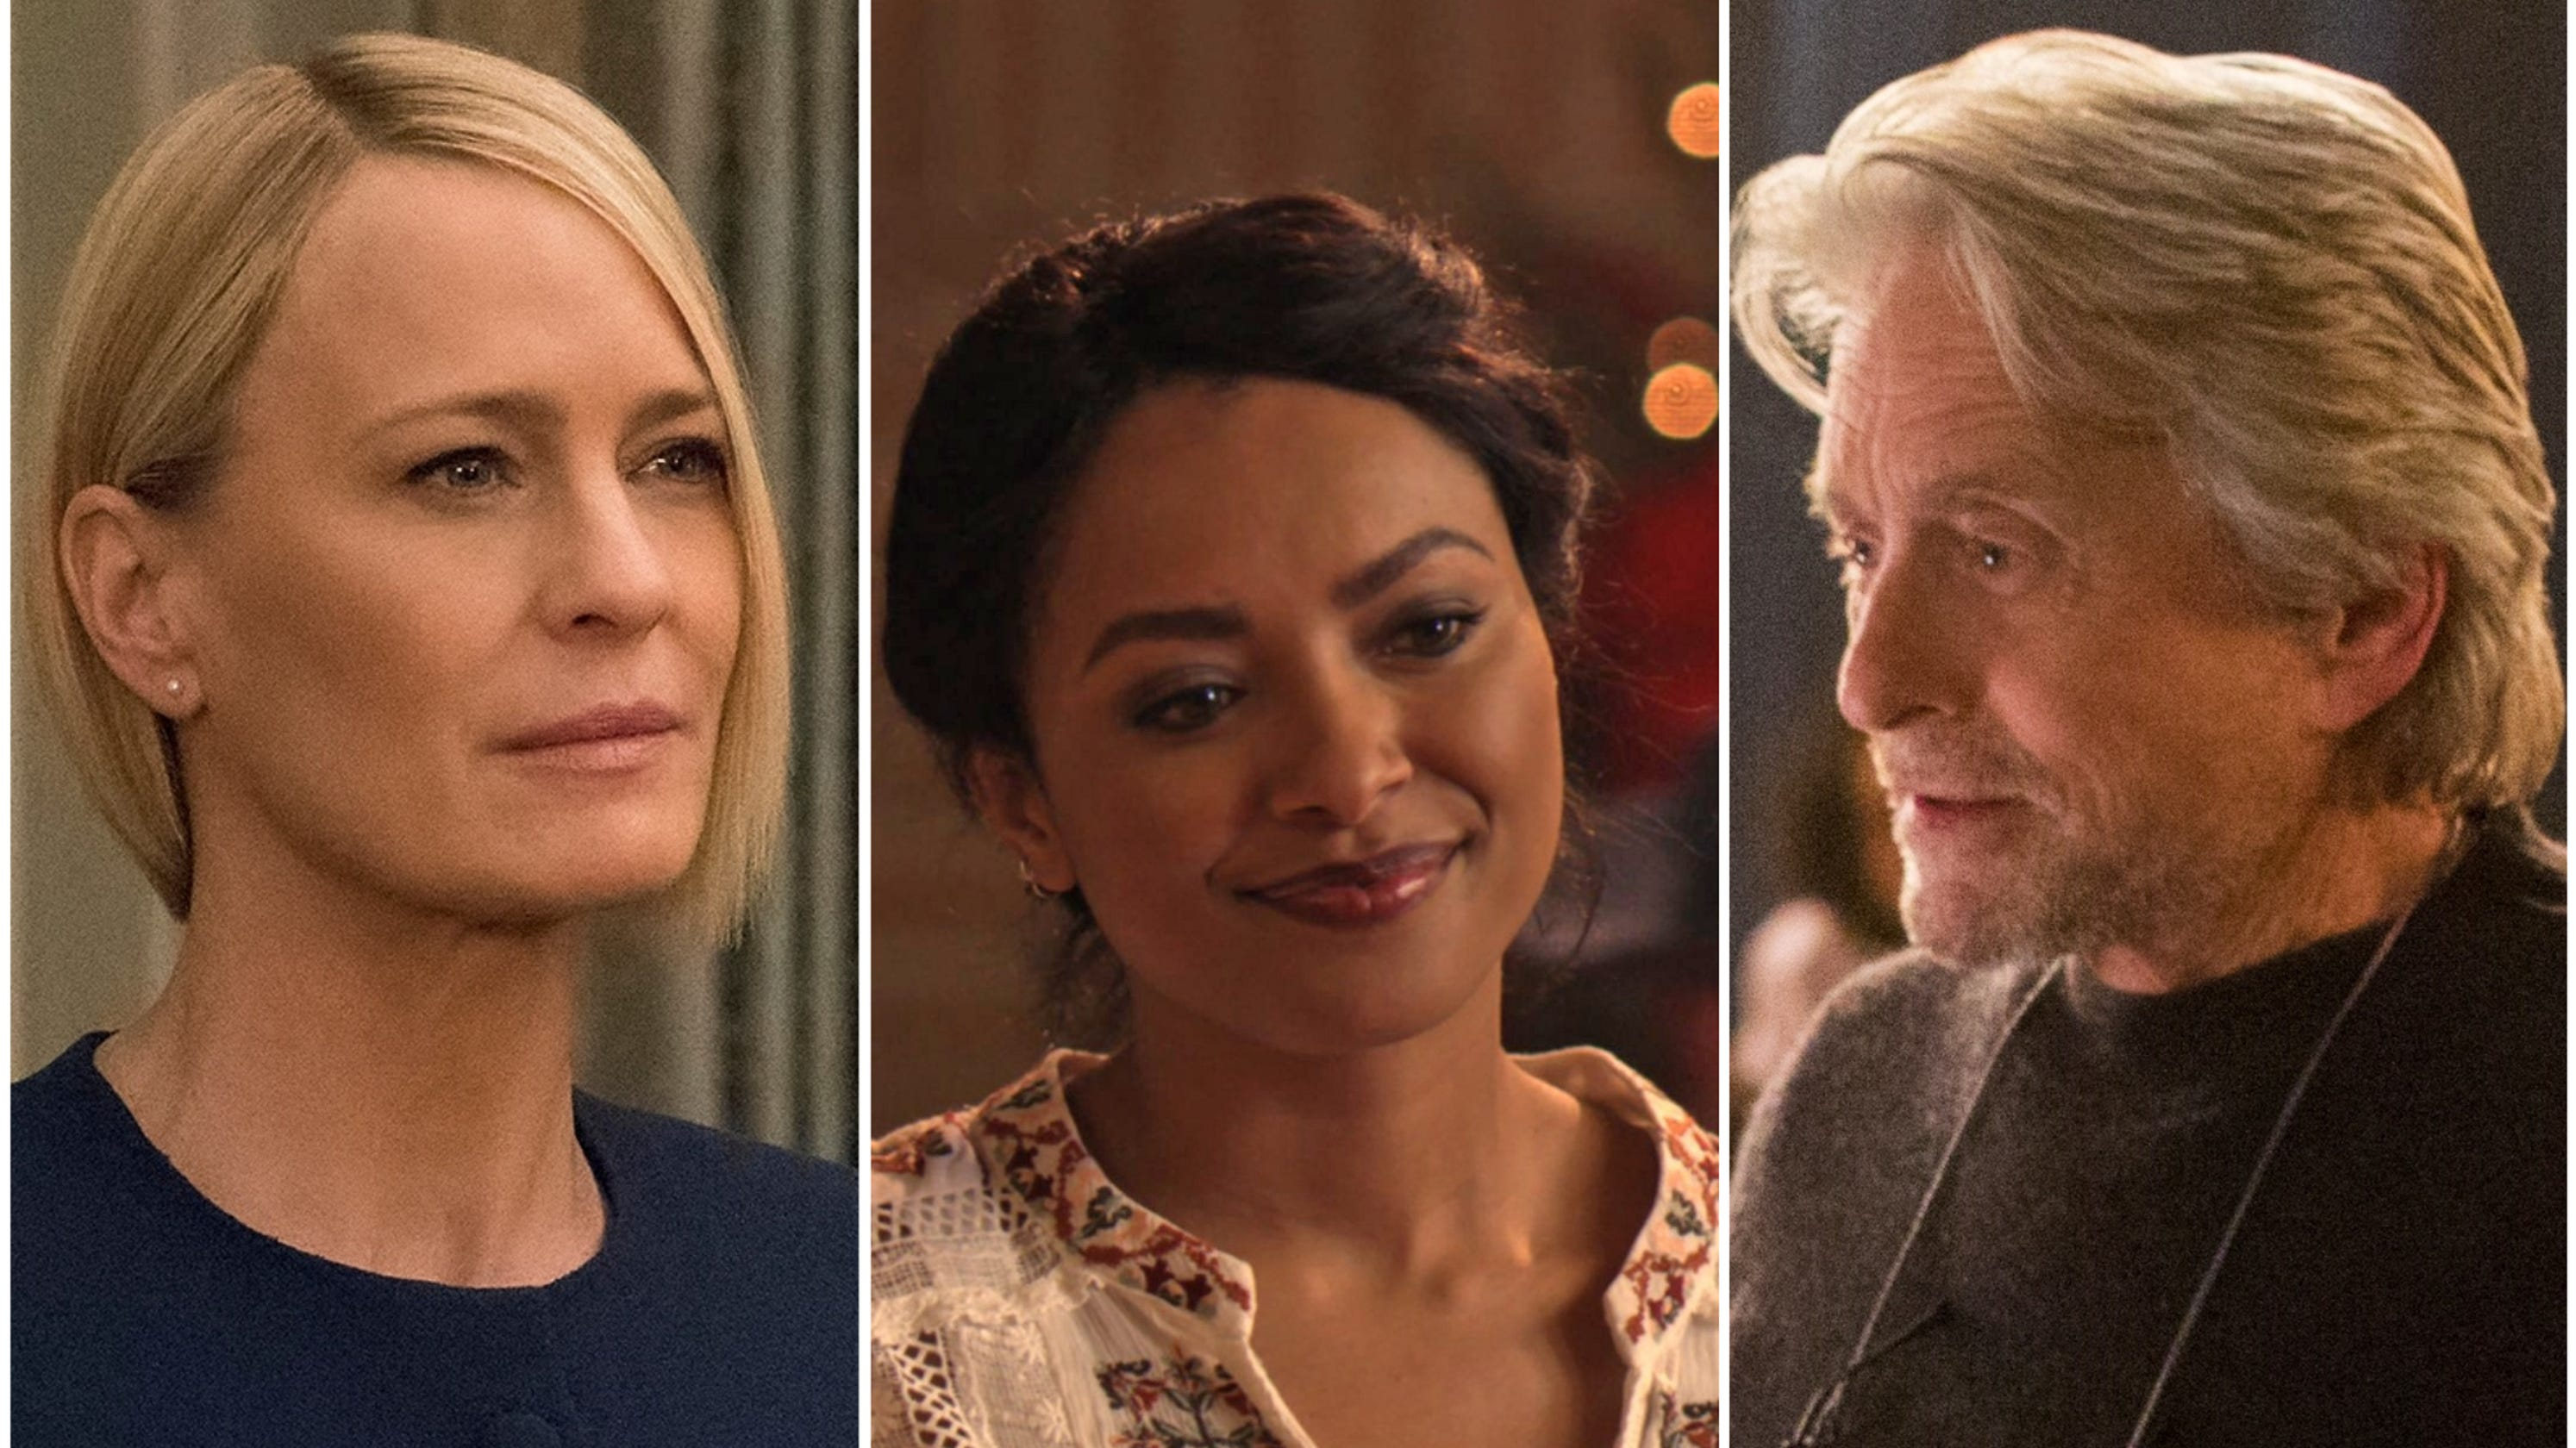 New on Netflix in November: 'House of Cards' and plenty of Christmas